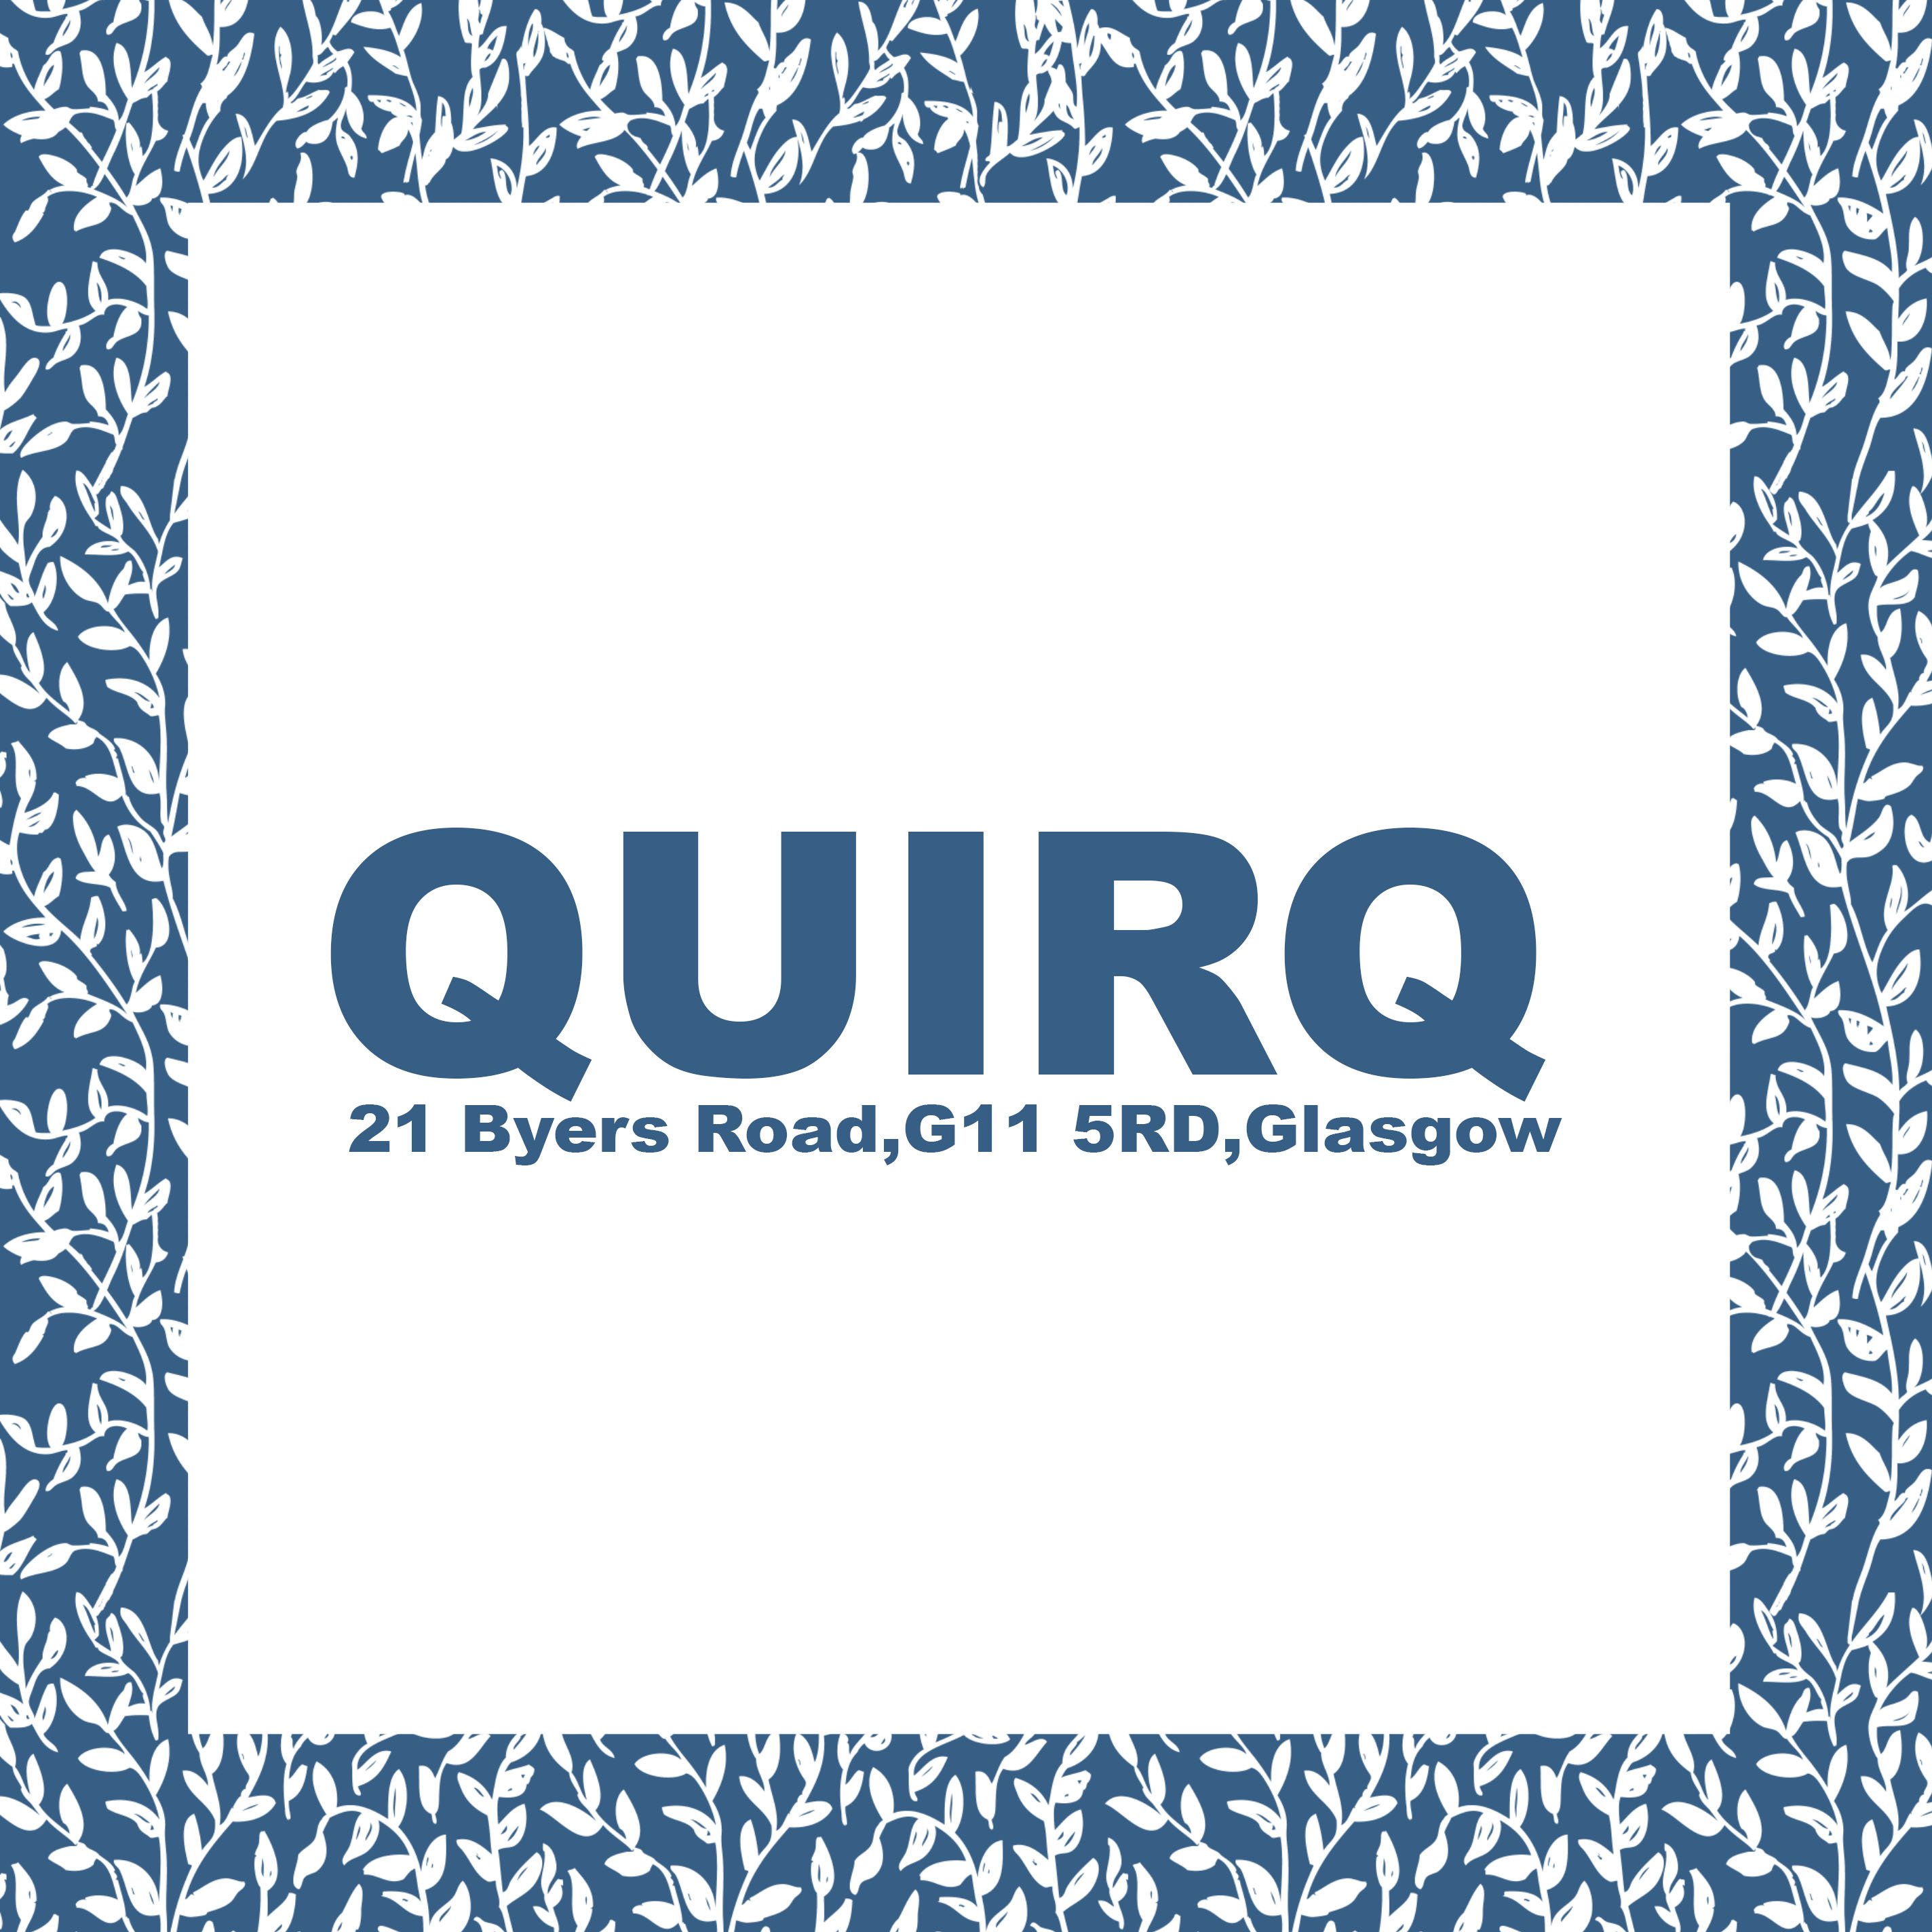 quirq,byers road, glasgow,